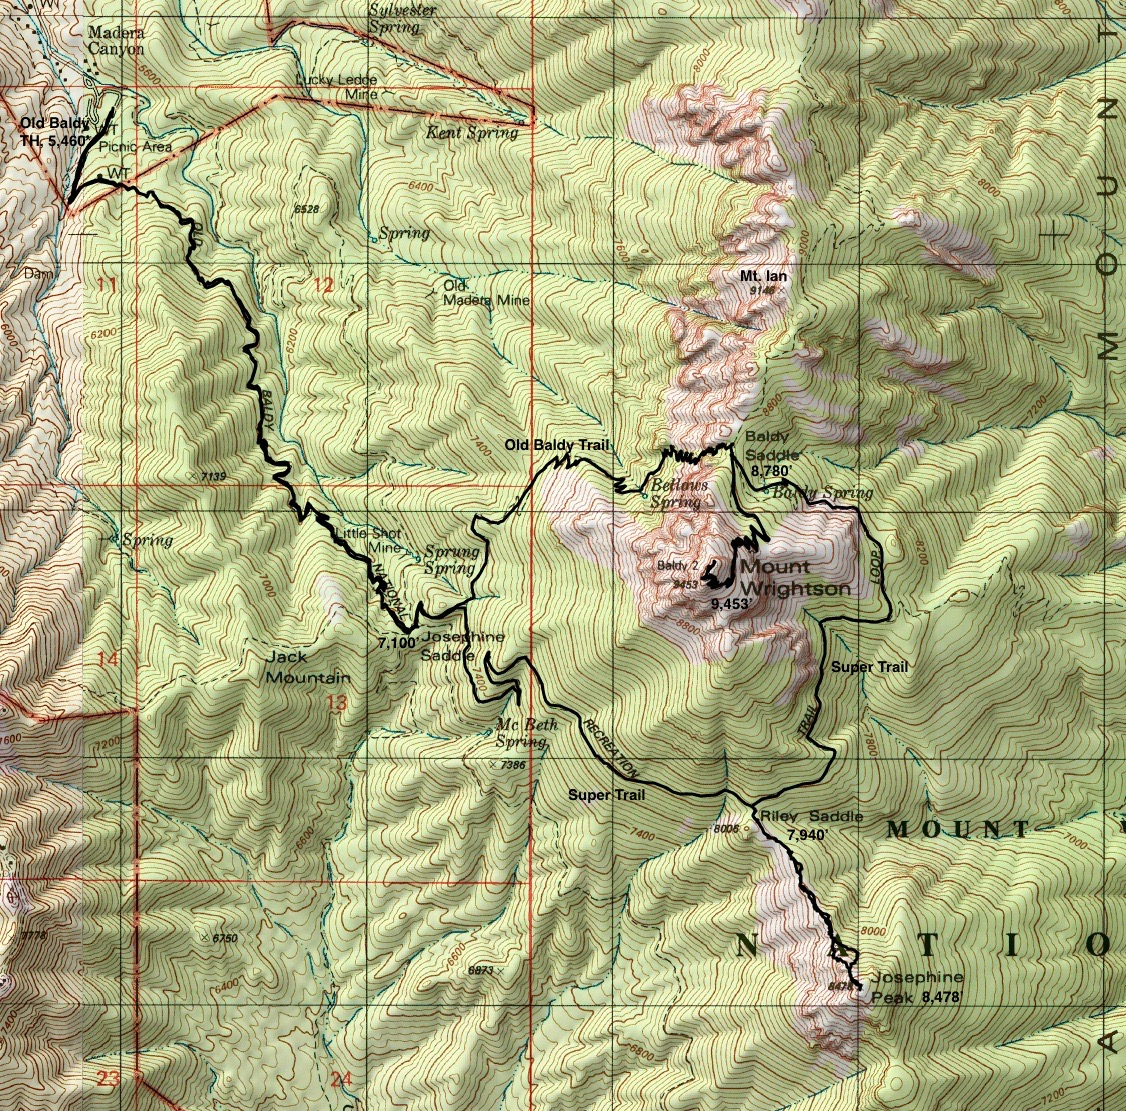 study the informative map placard at the old baldy trailhead elevation 5 460 feet two trails climb to josephine saddle old baldy 372 and the super